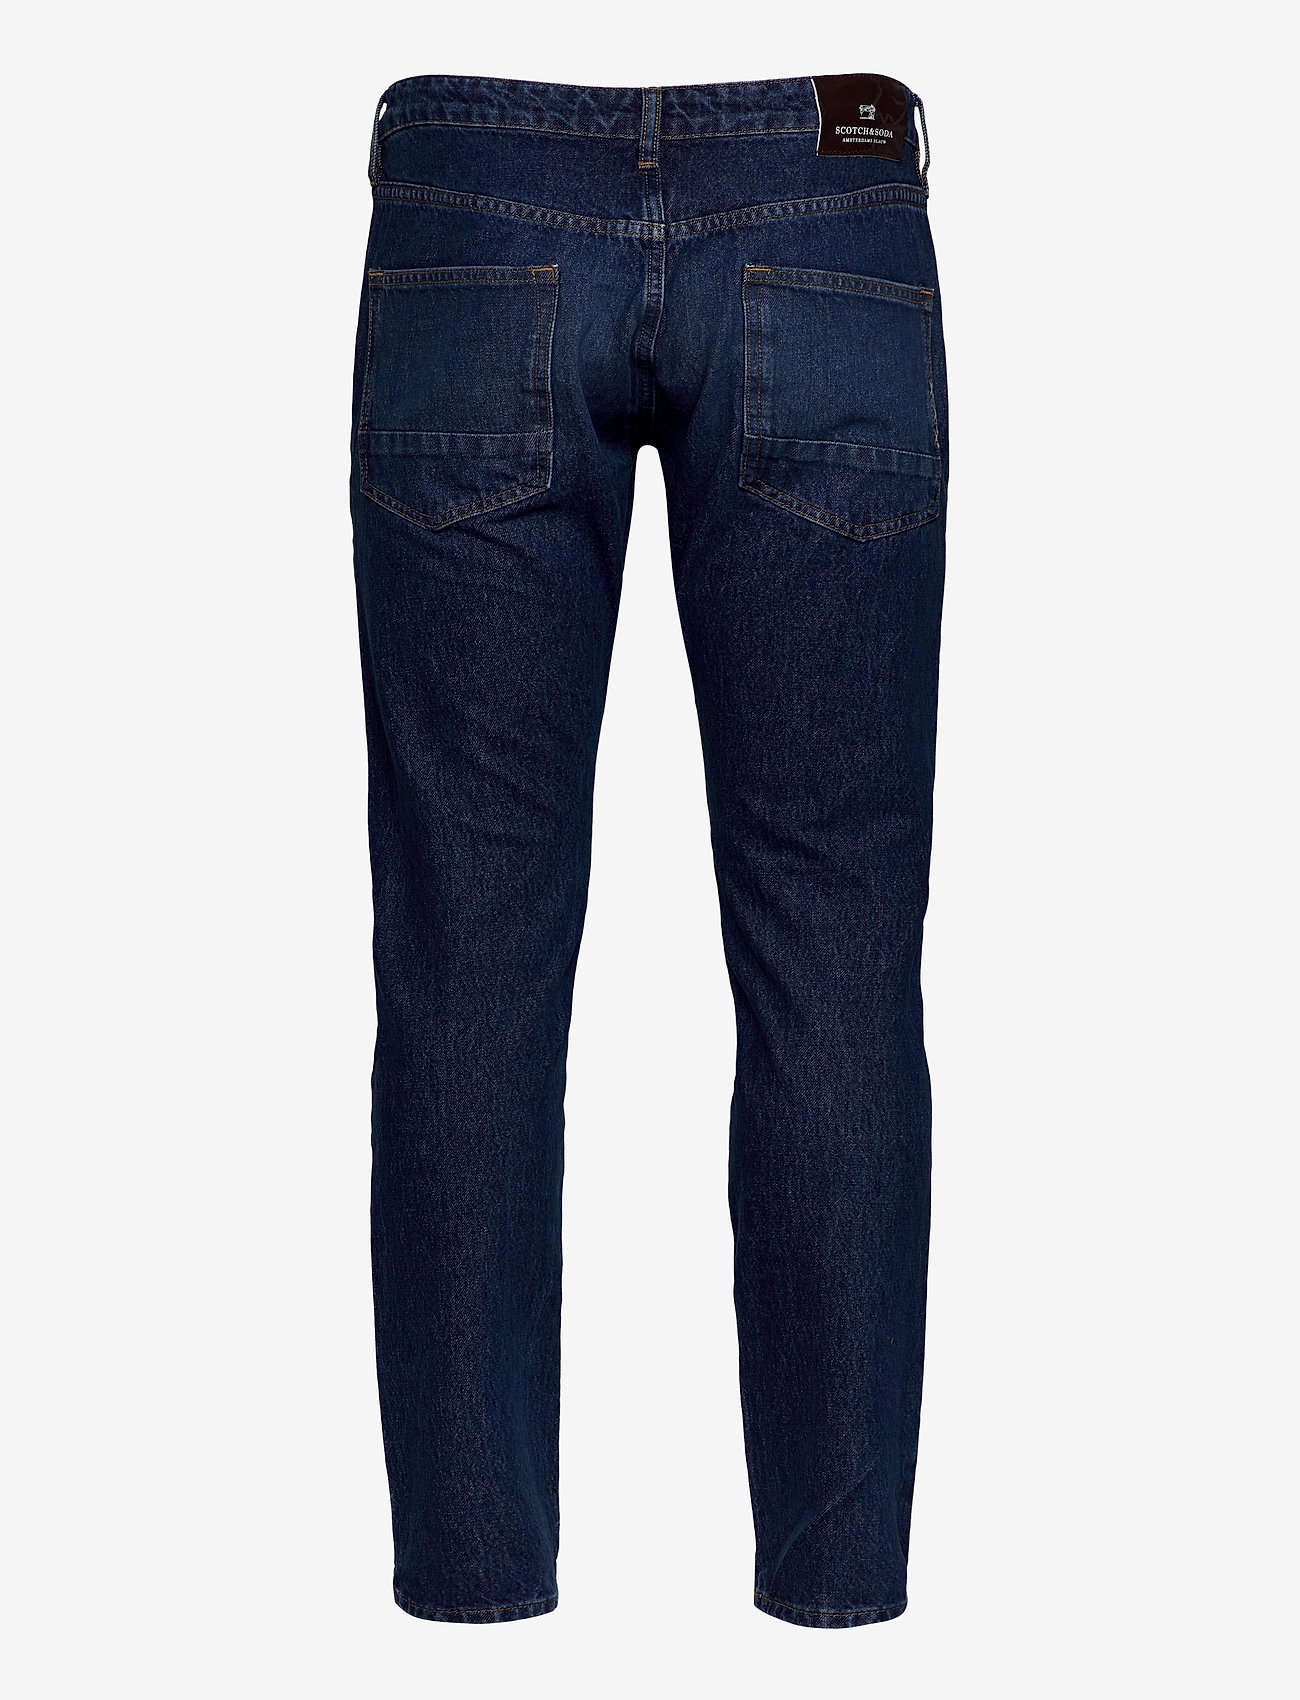 Scotch & Soda - Ralston - The Blue Gang - regular jeans - the blue gang - 1